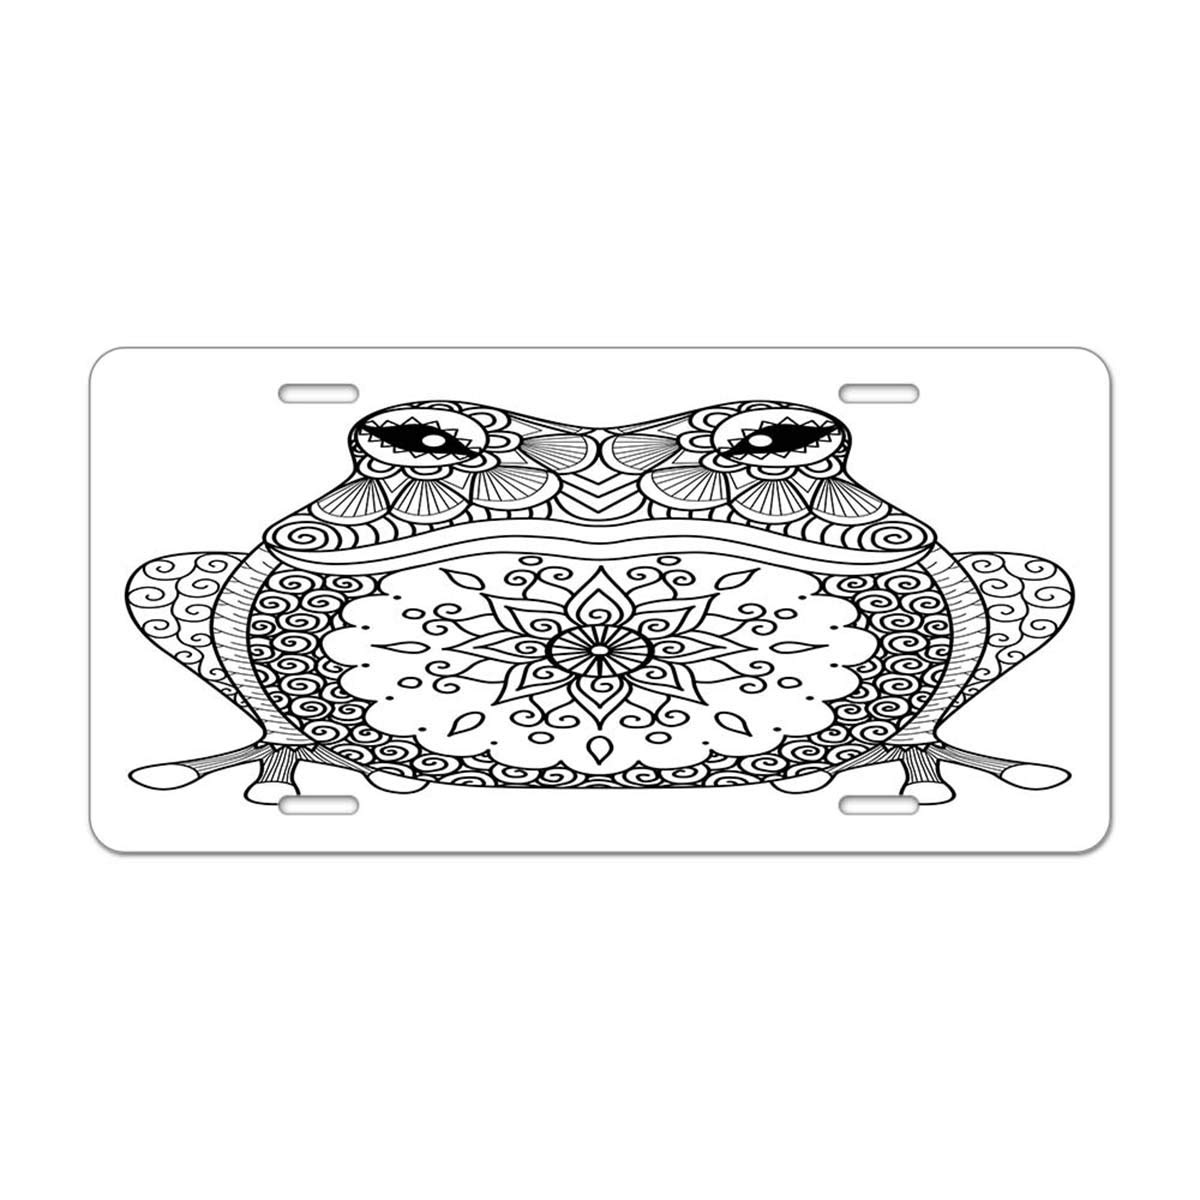 Mugod Eyes Aluminum License Plate Cartoon Face with a Smiling Expression on Orange Background Decorative Car License Plate Cover with 4 Holes Car Tags 6x12